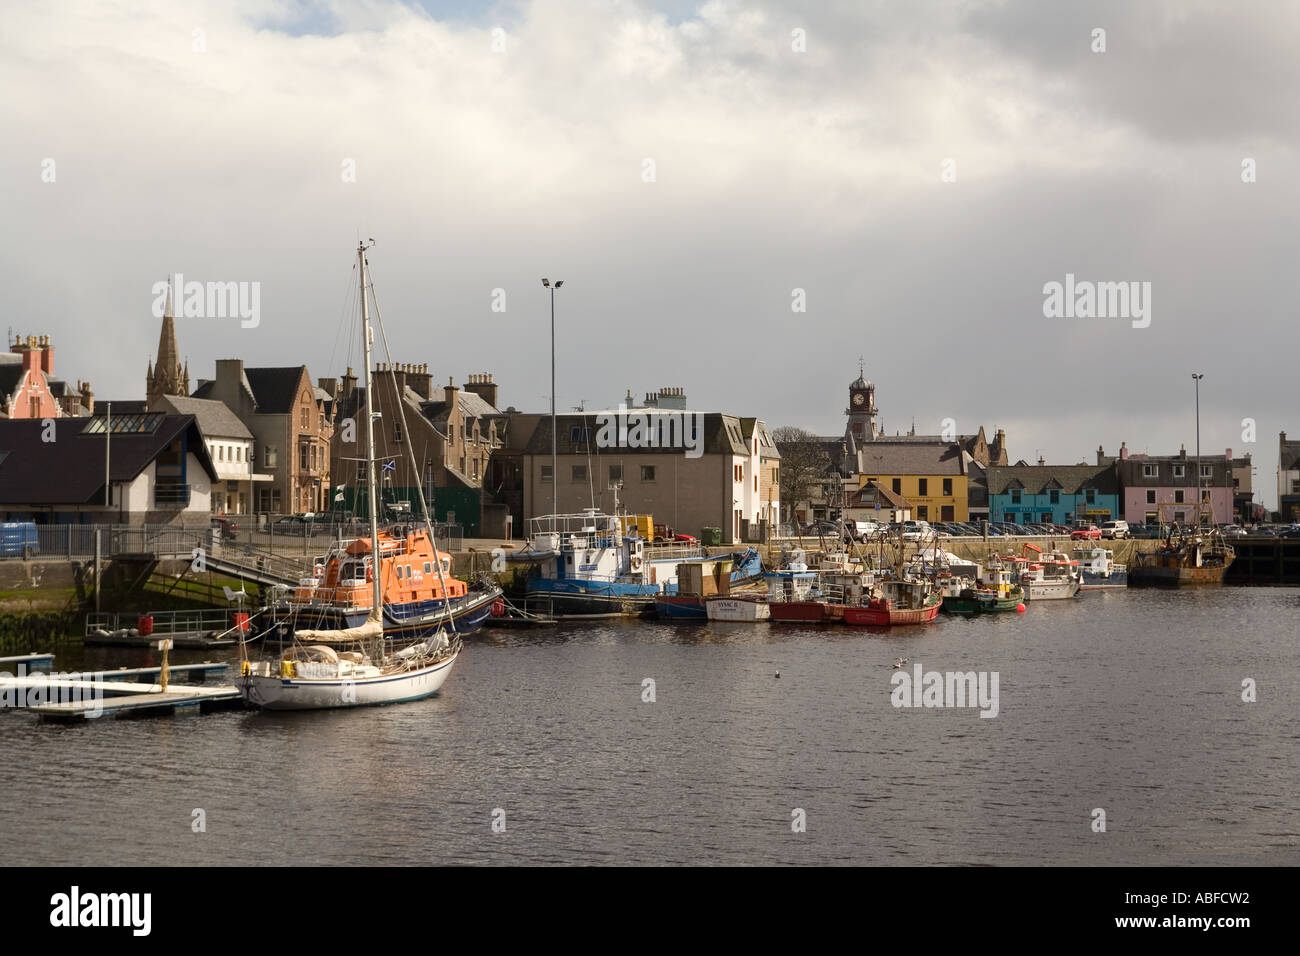 UK Scotland Western Isles Outer Hebrides Lewis Stornoway fishing boats in the inner harbour - Stock Image